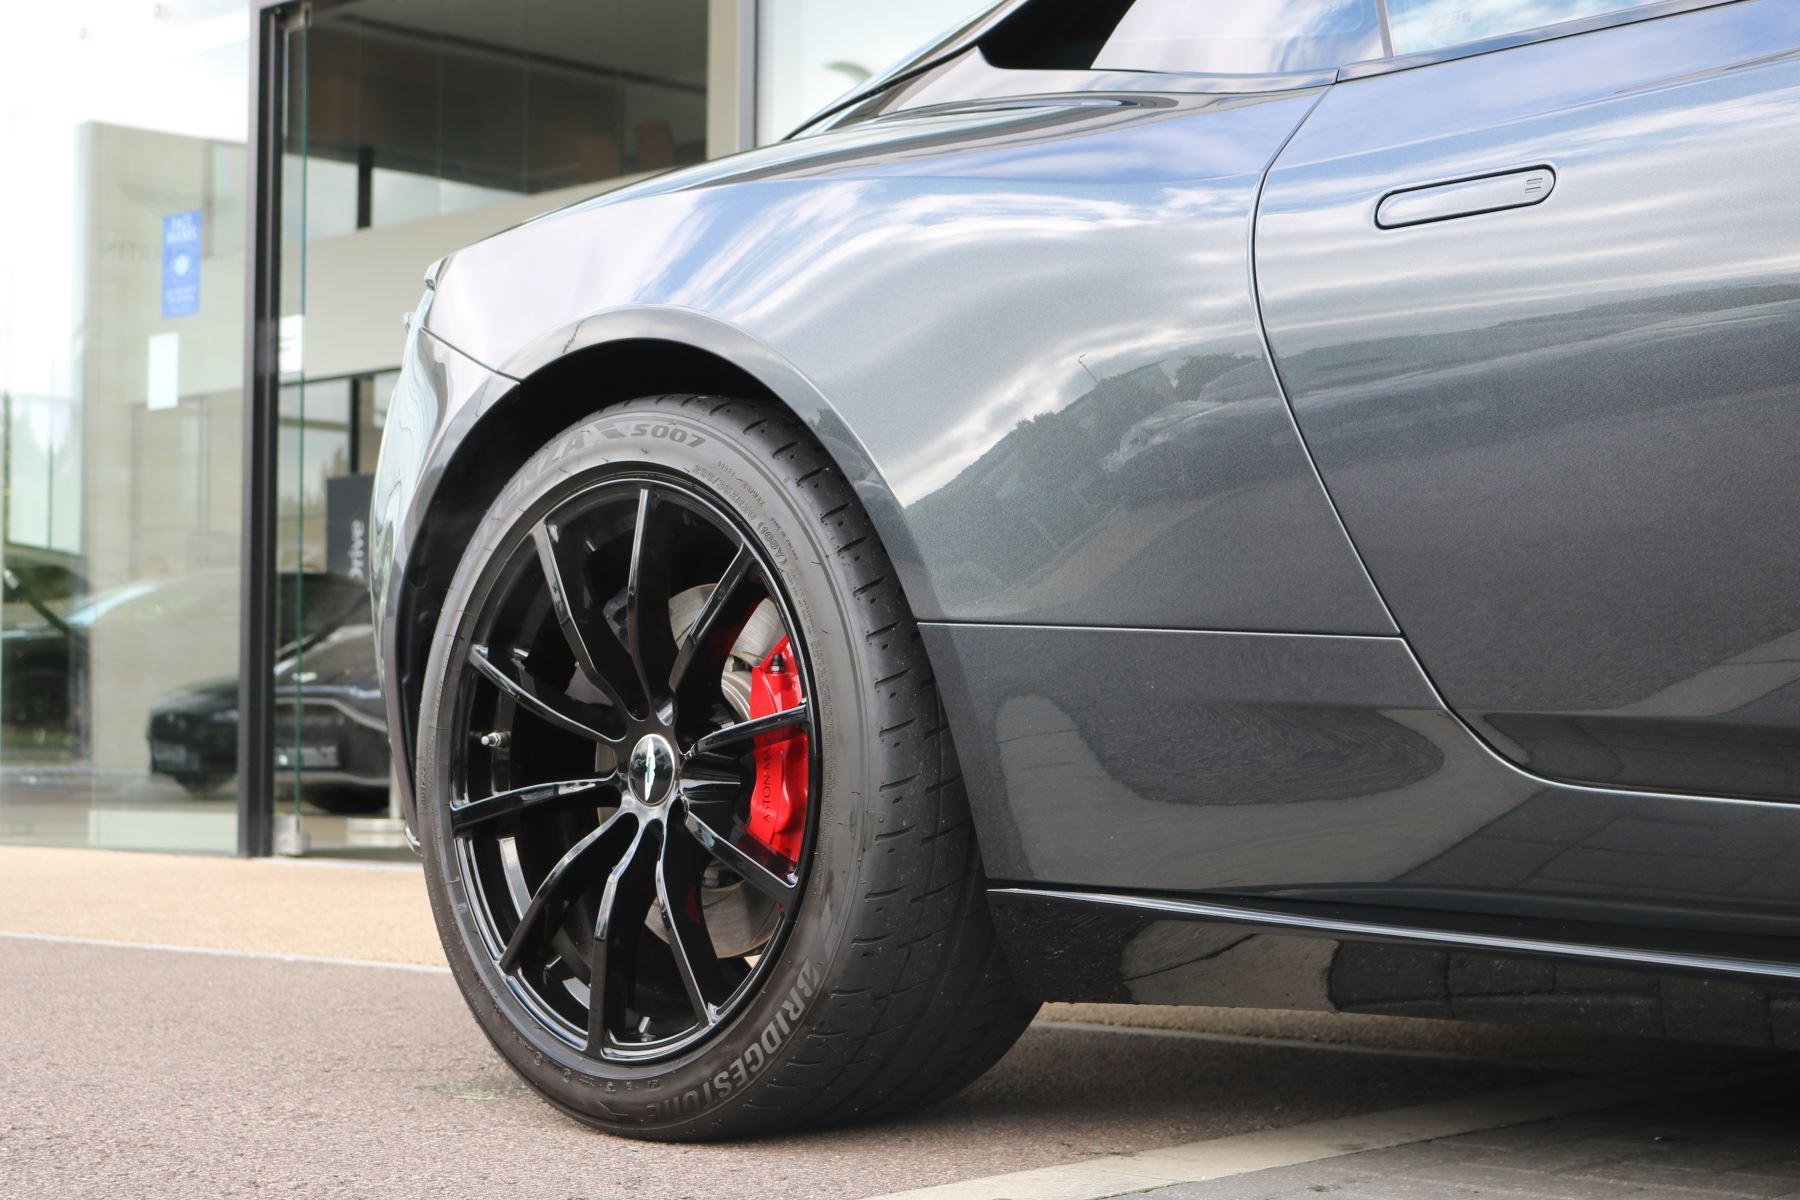 Aston Martin DB11 V12 AMR 2dr Touchtronic FREE SERVICING  image 17